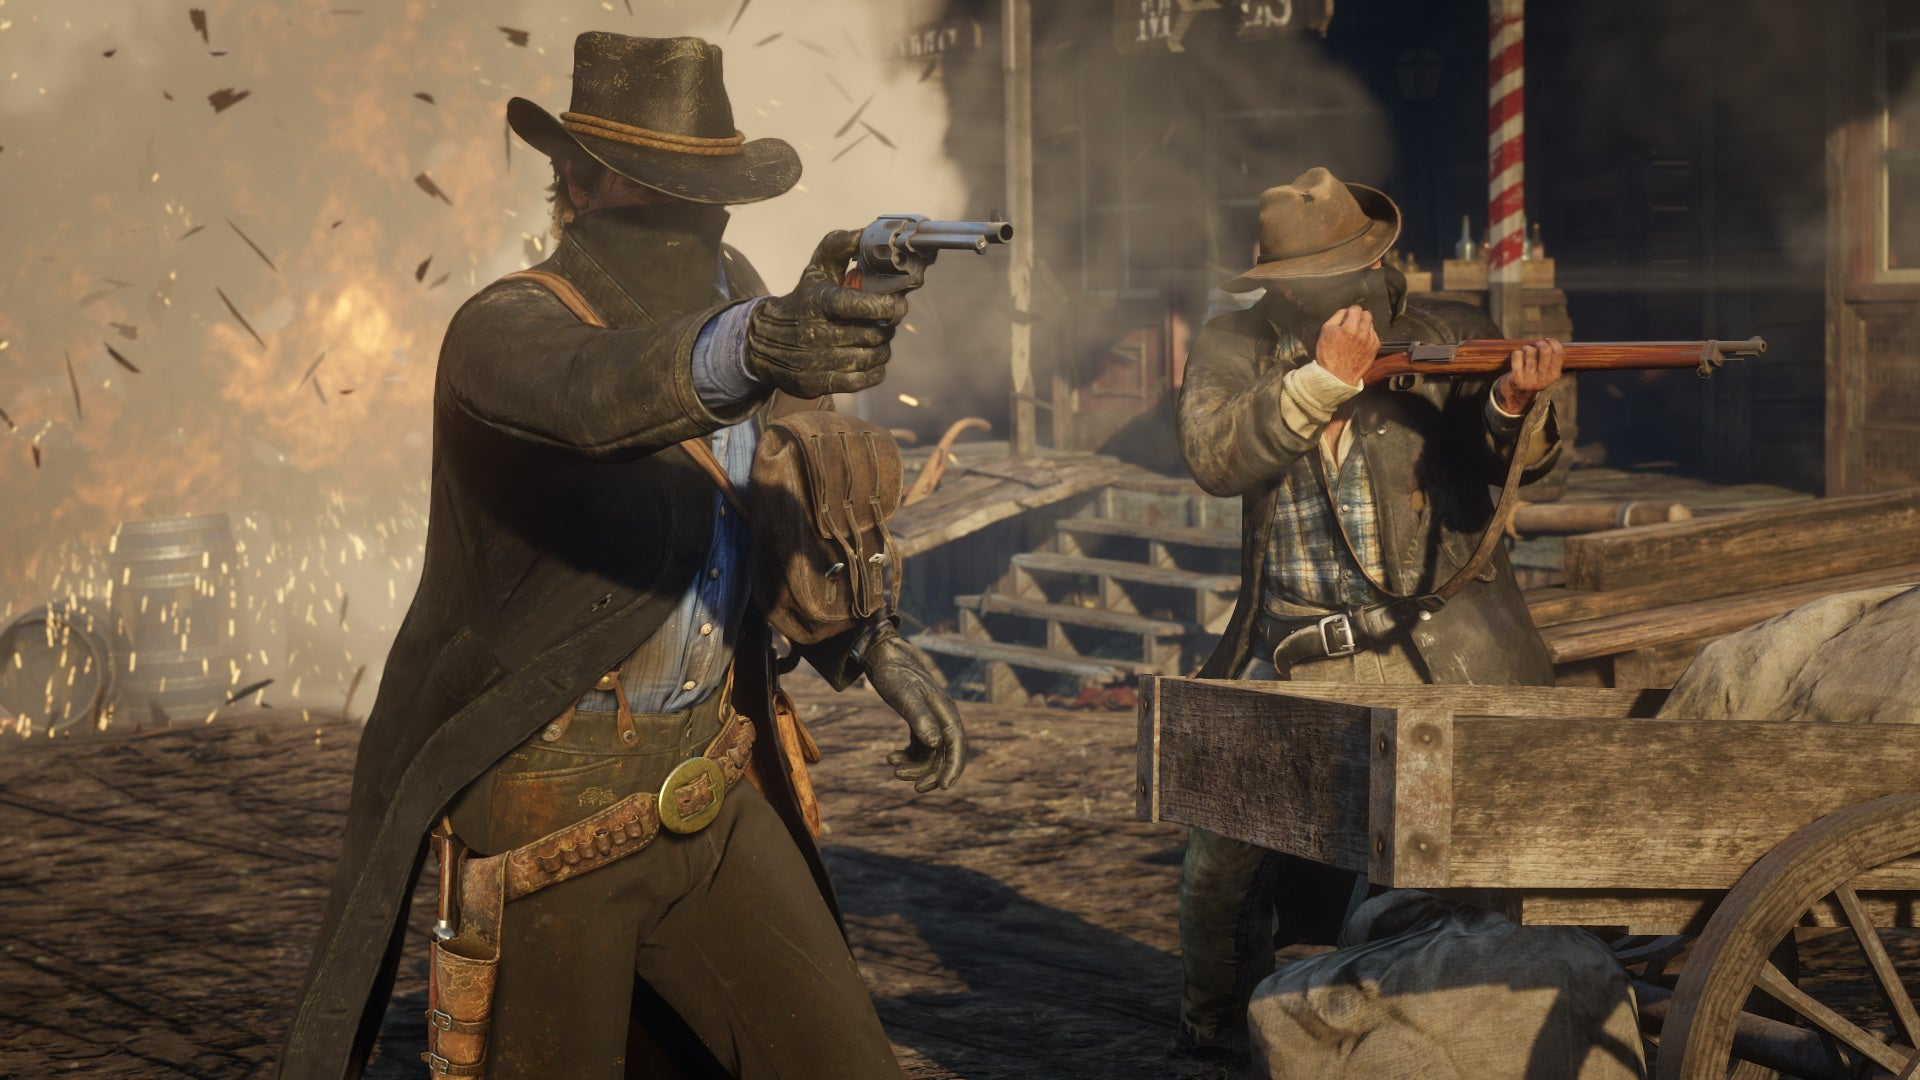 18 Months After Red Dead Redemption 2, Rockstar Has Made Big Cultural Changes